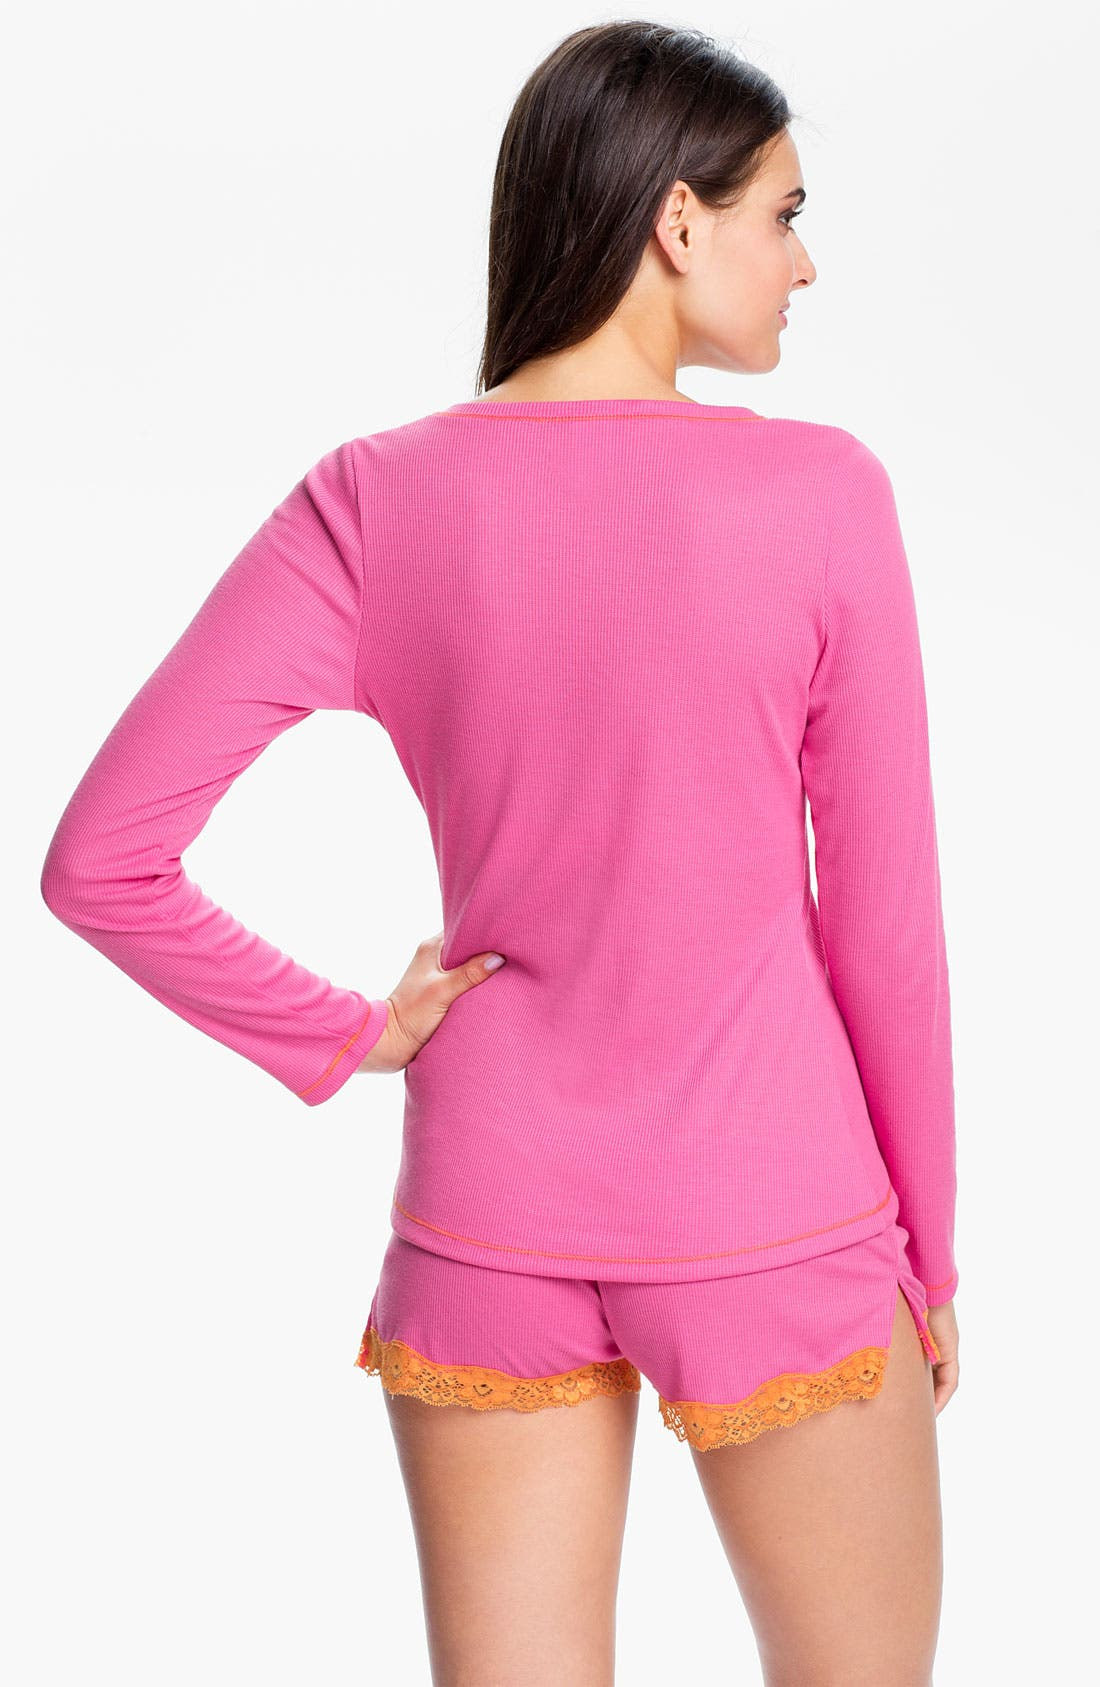 Contrast Trim Pajamas,                             Alternate thumbnail 2, color,                             Hot Pink W/ Dreamsicle